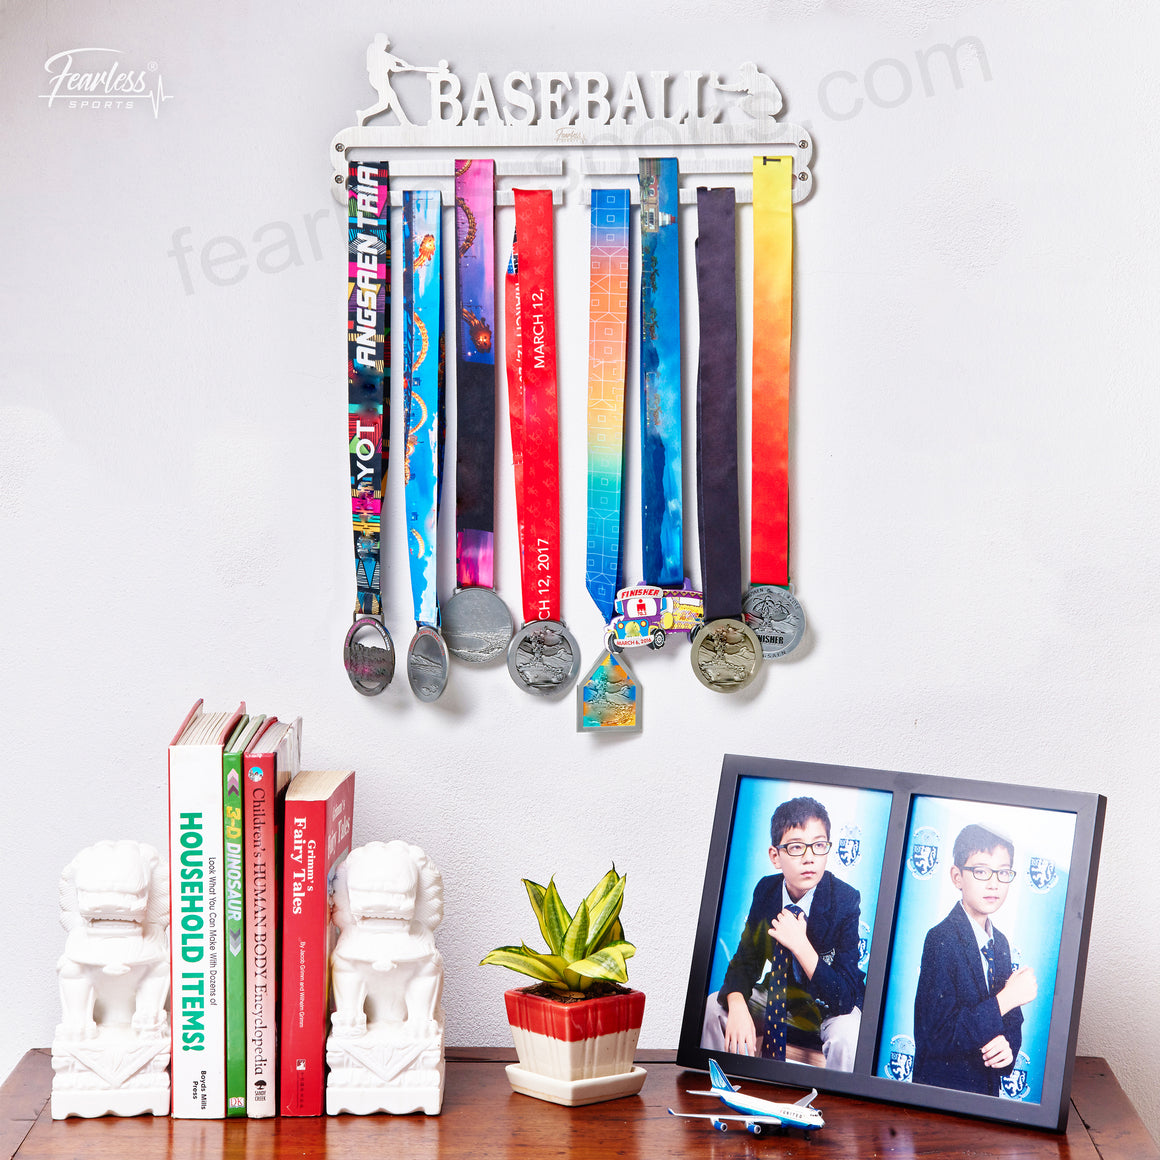 Born to Swim Sport Stainless Steel Medal Display Hanger Medal Organizer ITM./ART.5182 - Fearless Sports